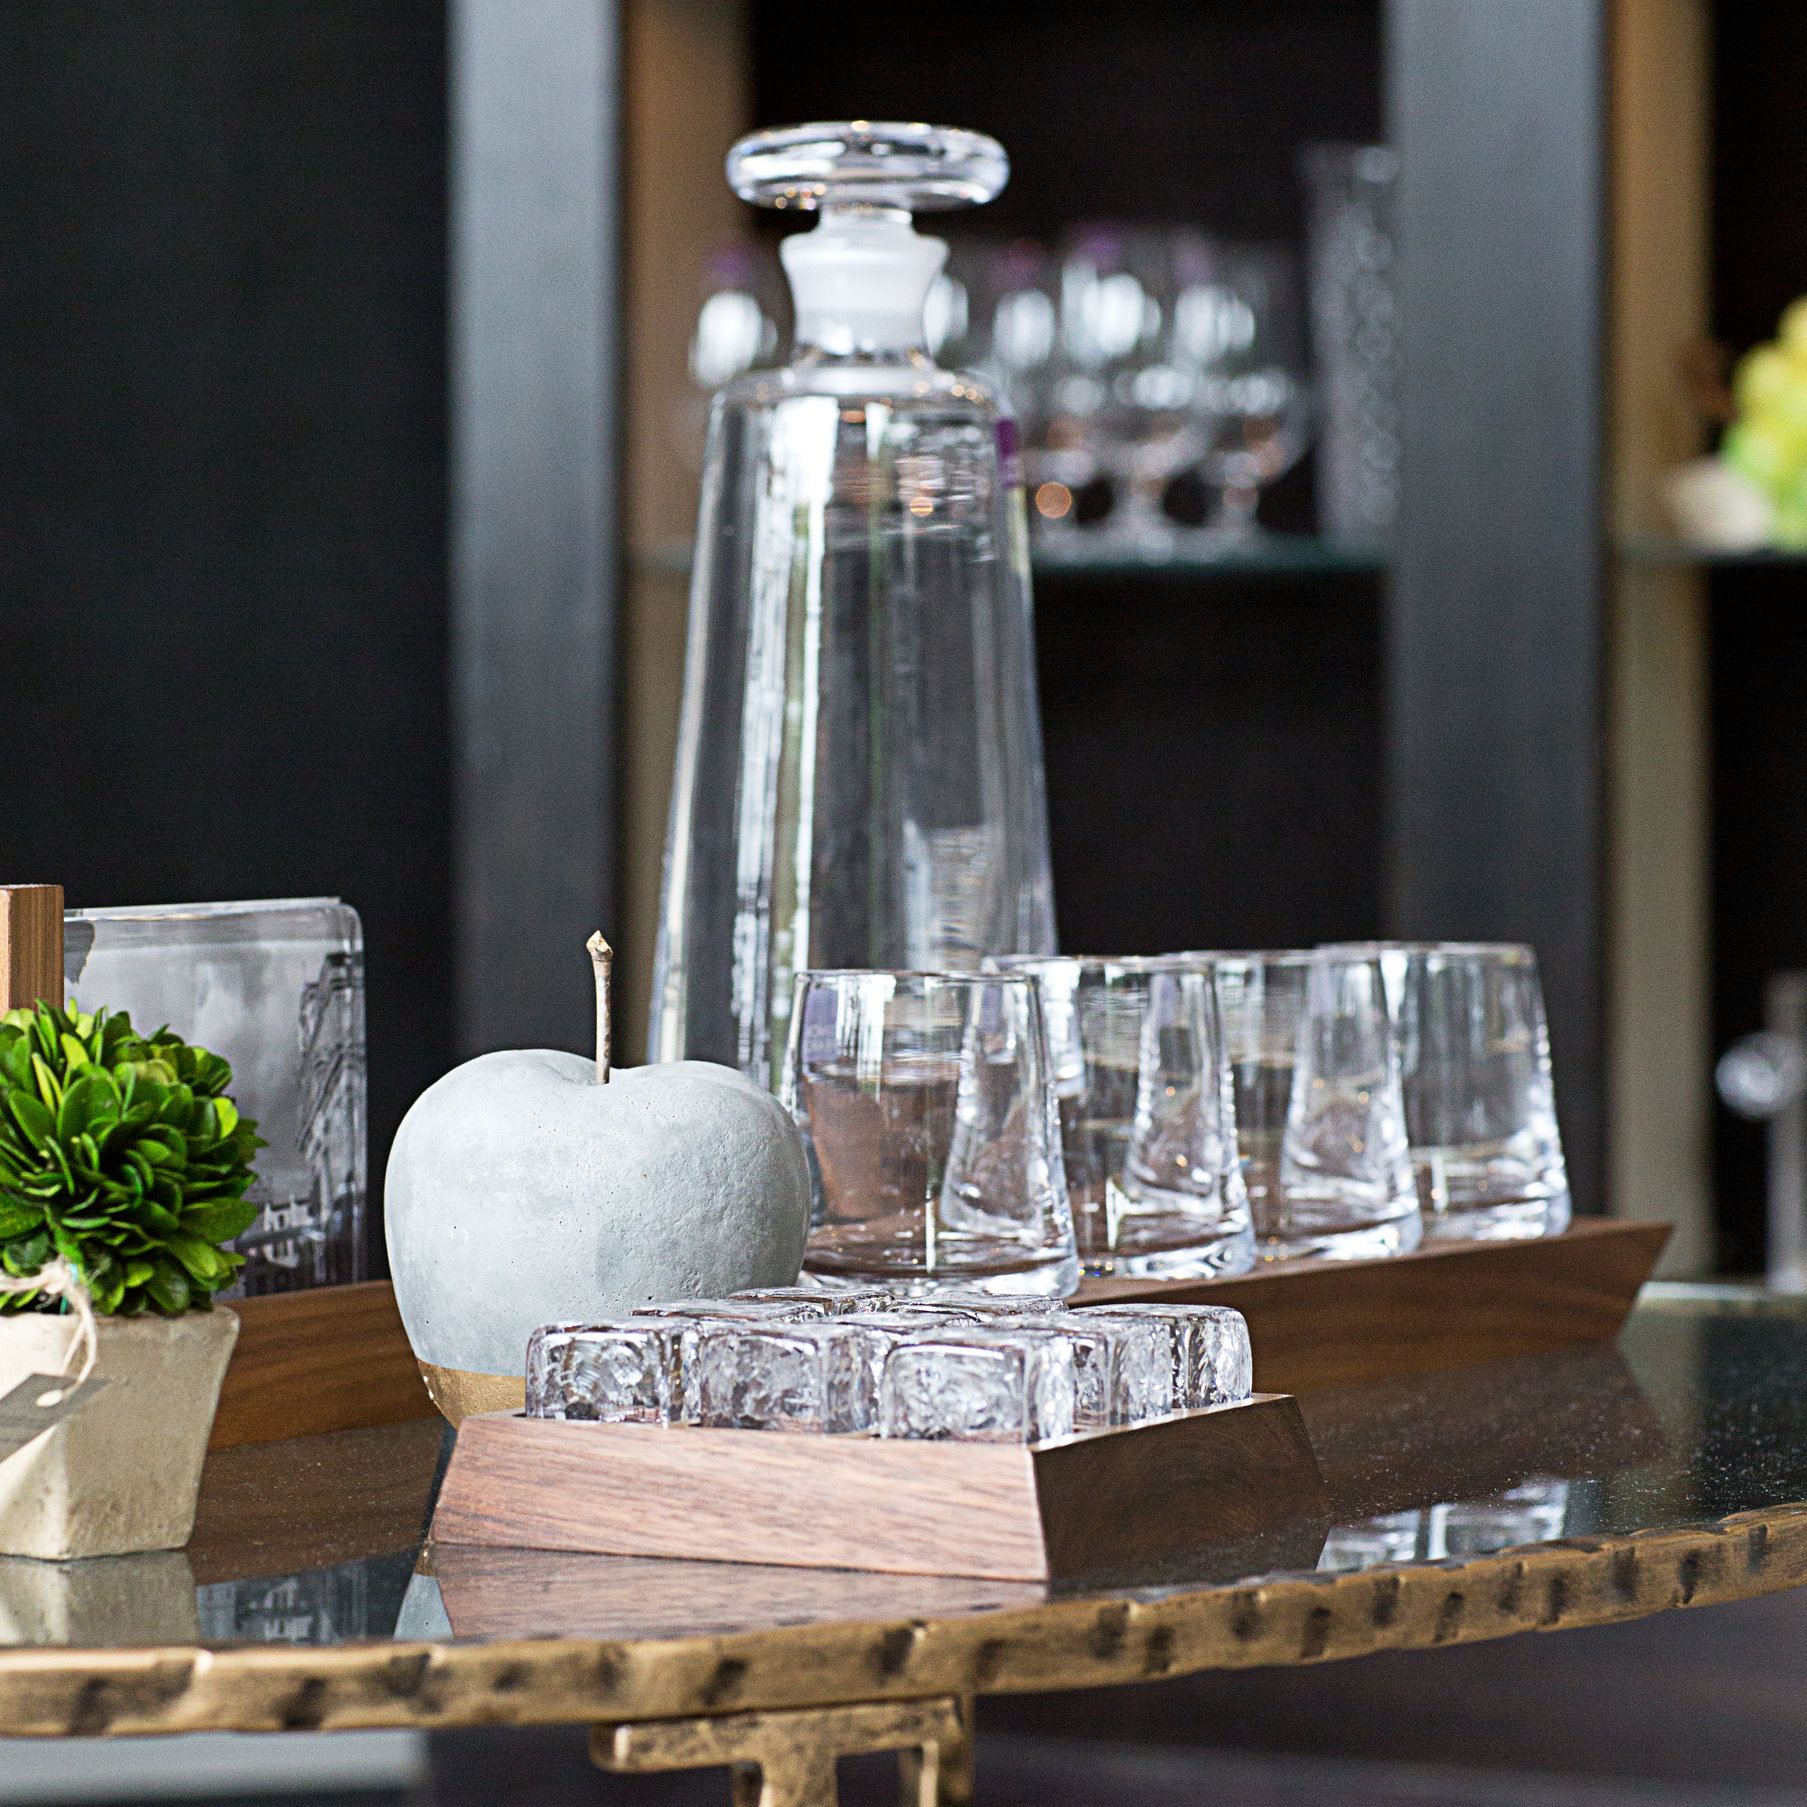 Shop Accessories and Gifts  We pride ourselves on stocking unique tableware, sculptural pieces and home accessories that speak to a multitude of aesthetics. Come shop our thoughtfully curated pieces to find the perfect piece for any home or occasion.